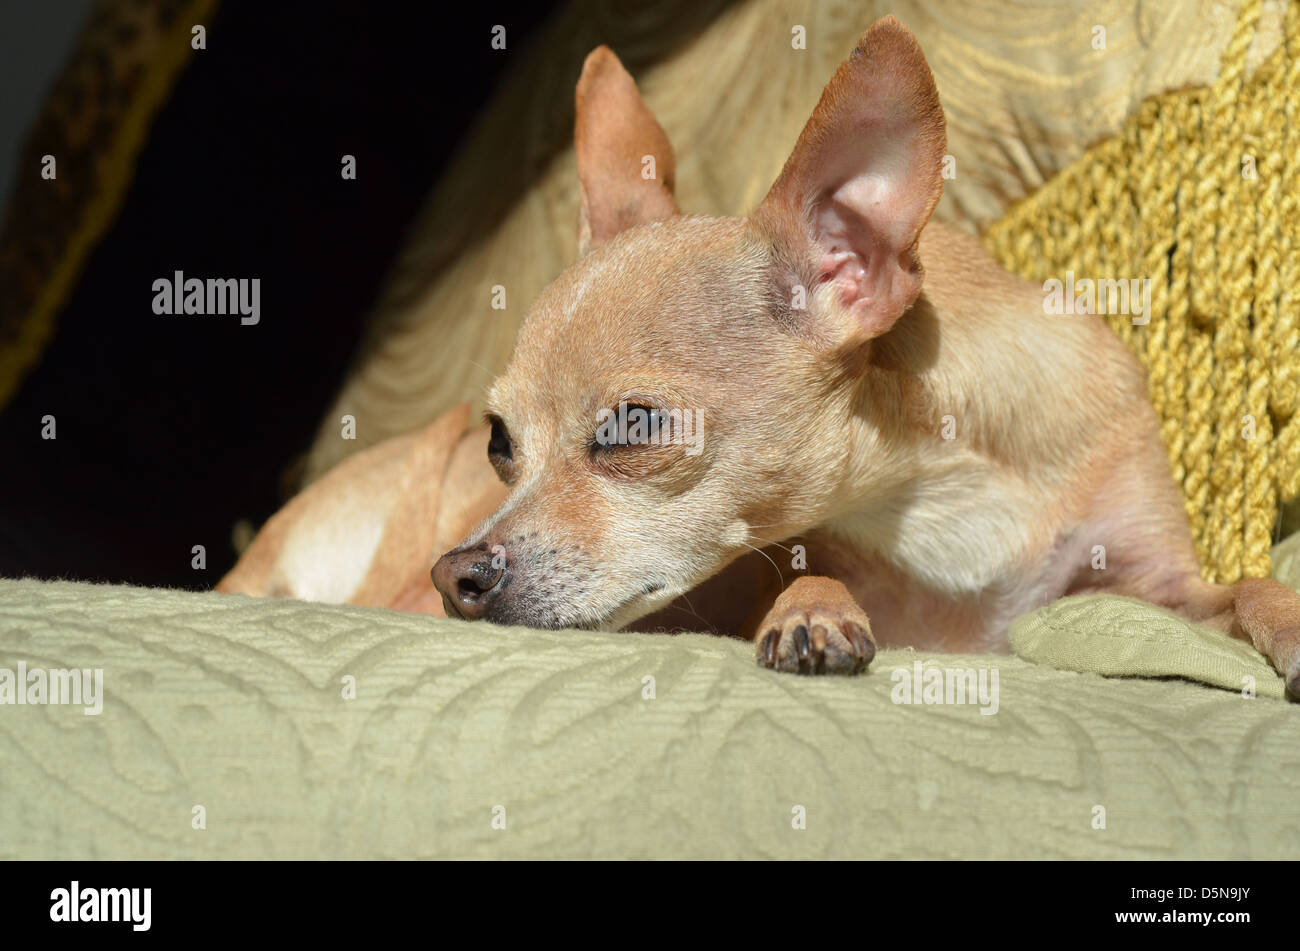 A tan color Chihuahua with eyes open and ears up, relaxes in a comfy spot. Stock Photo